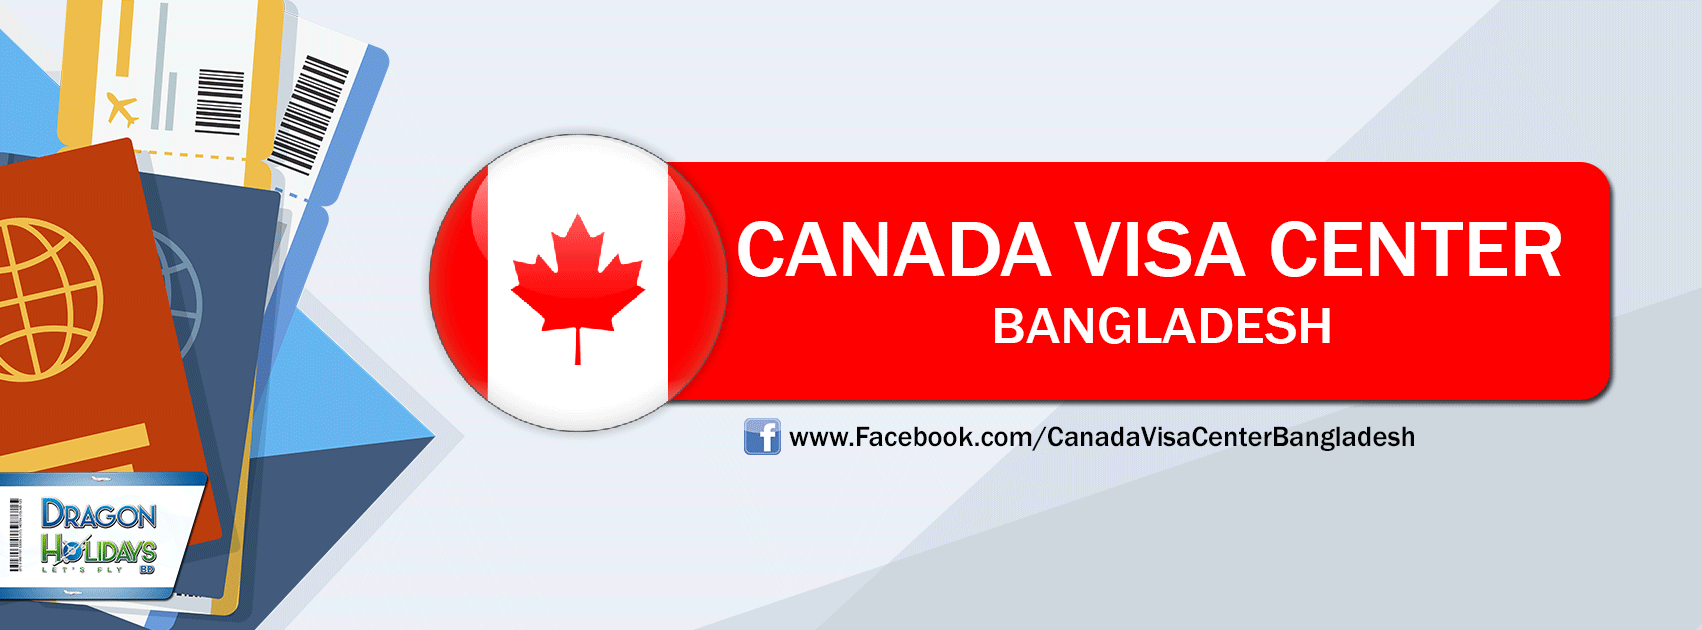 canada-fb-cover-page-new-visa